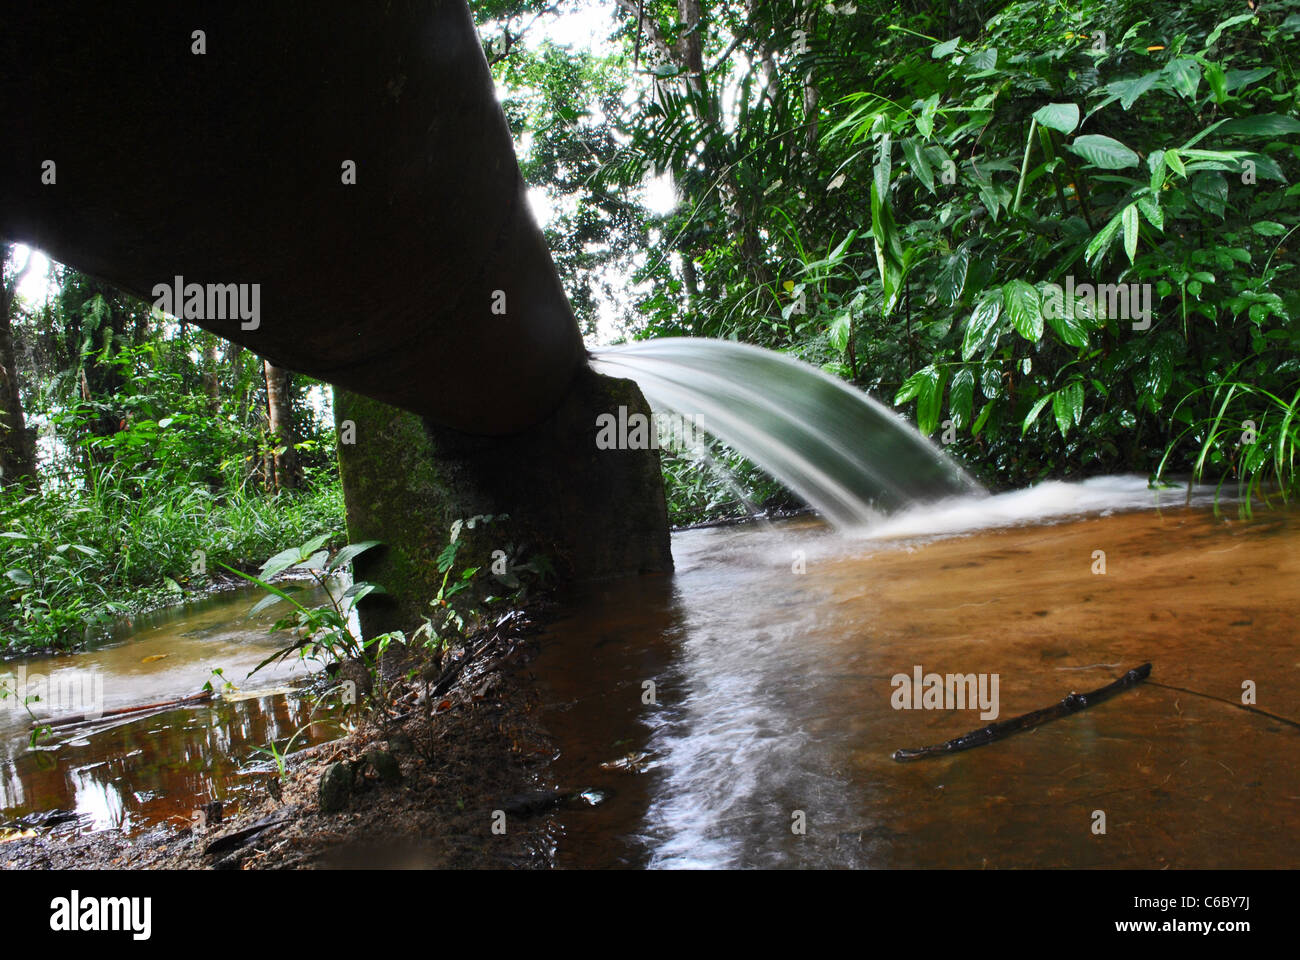 Leaking water pipe in the forest near Gbarnga, Liberia - Stock Image